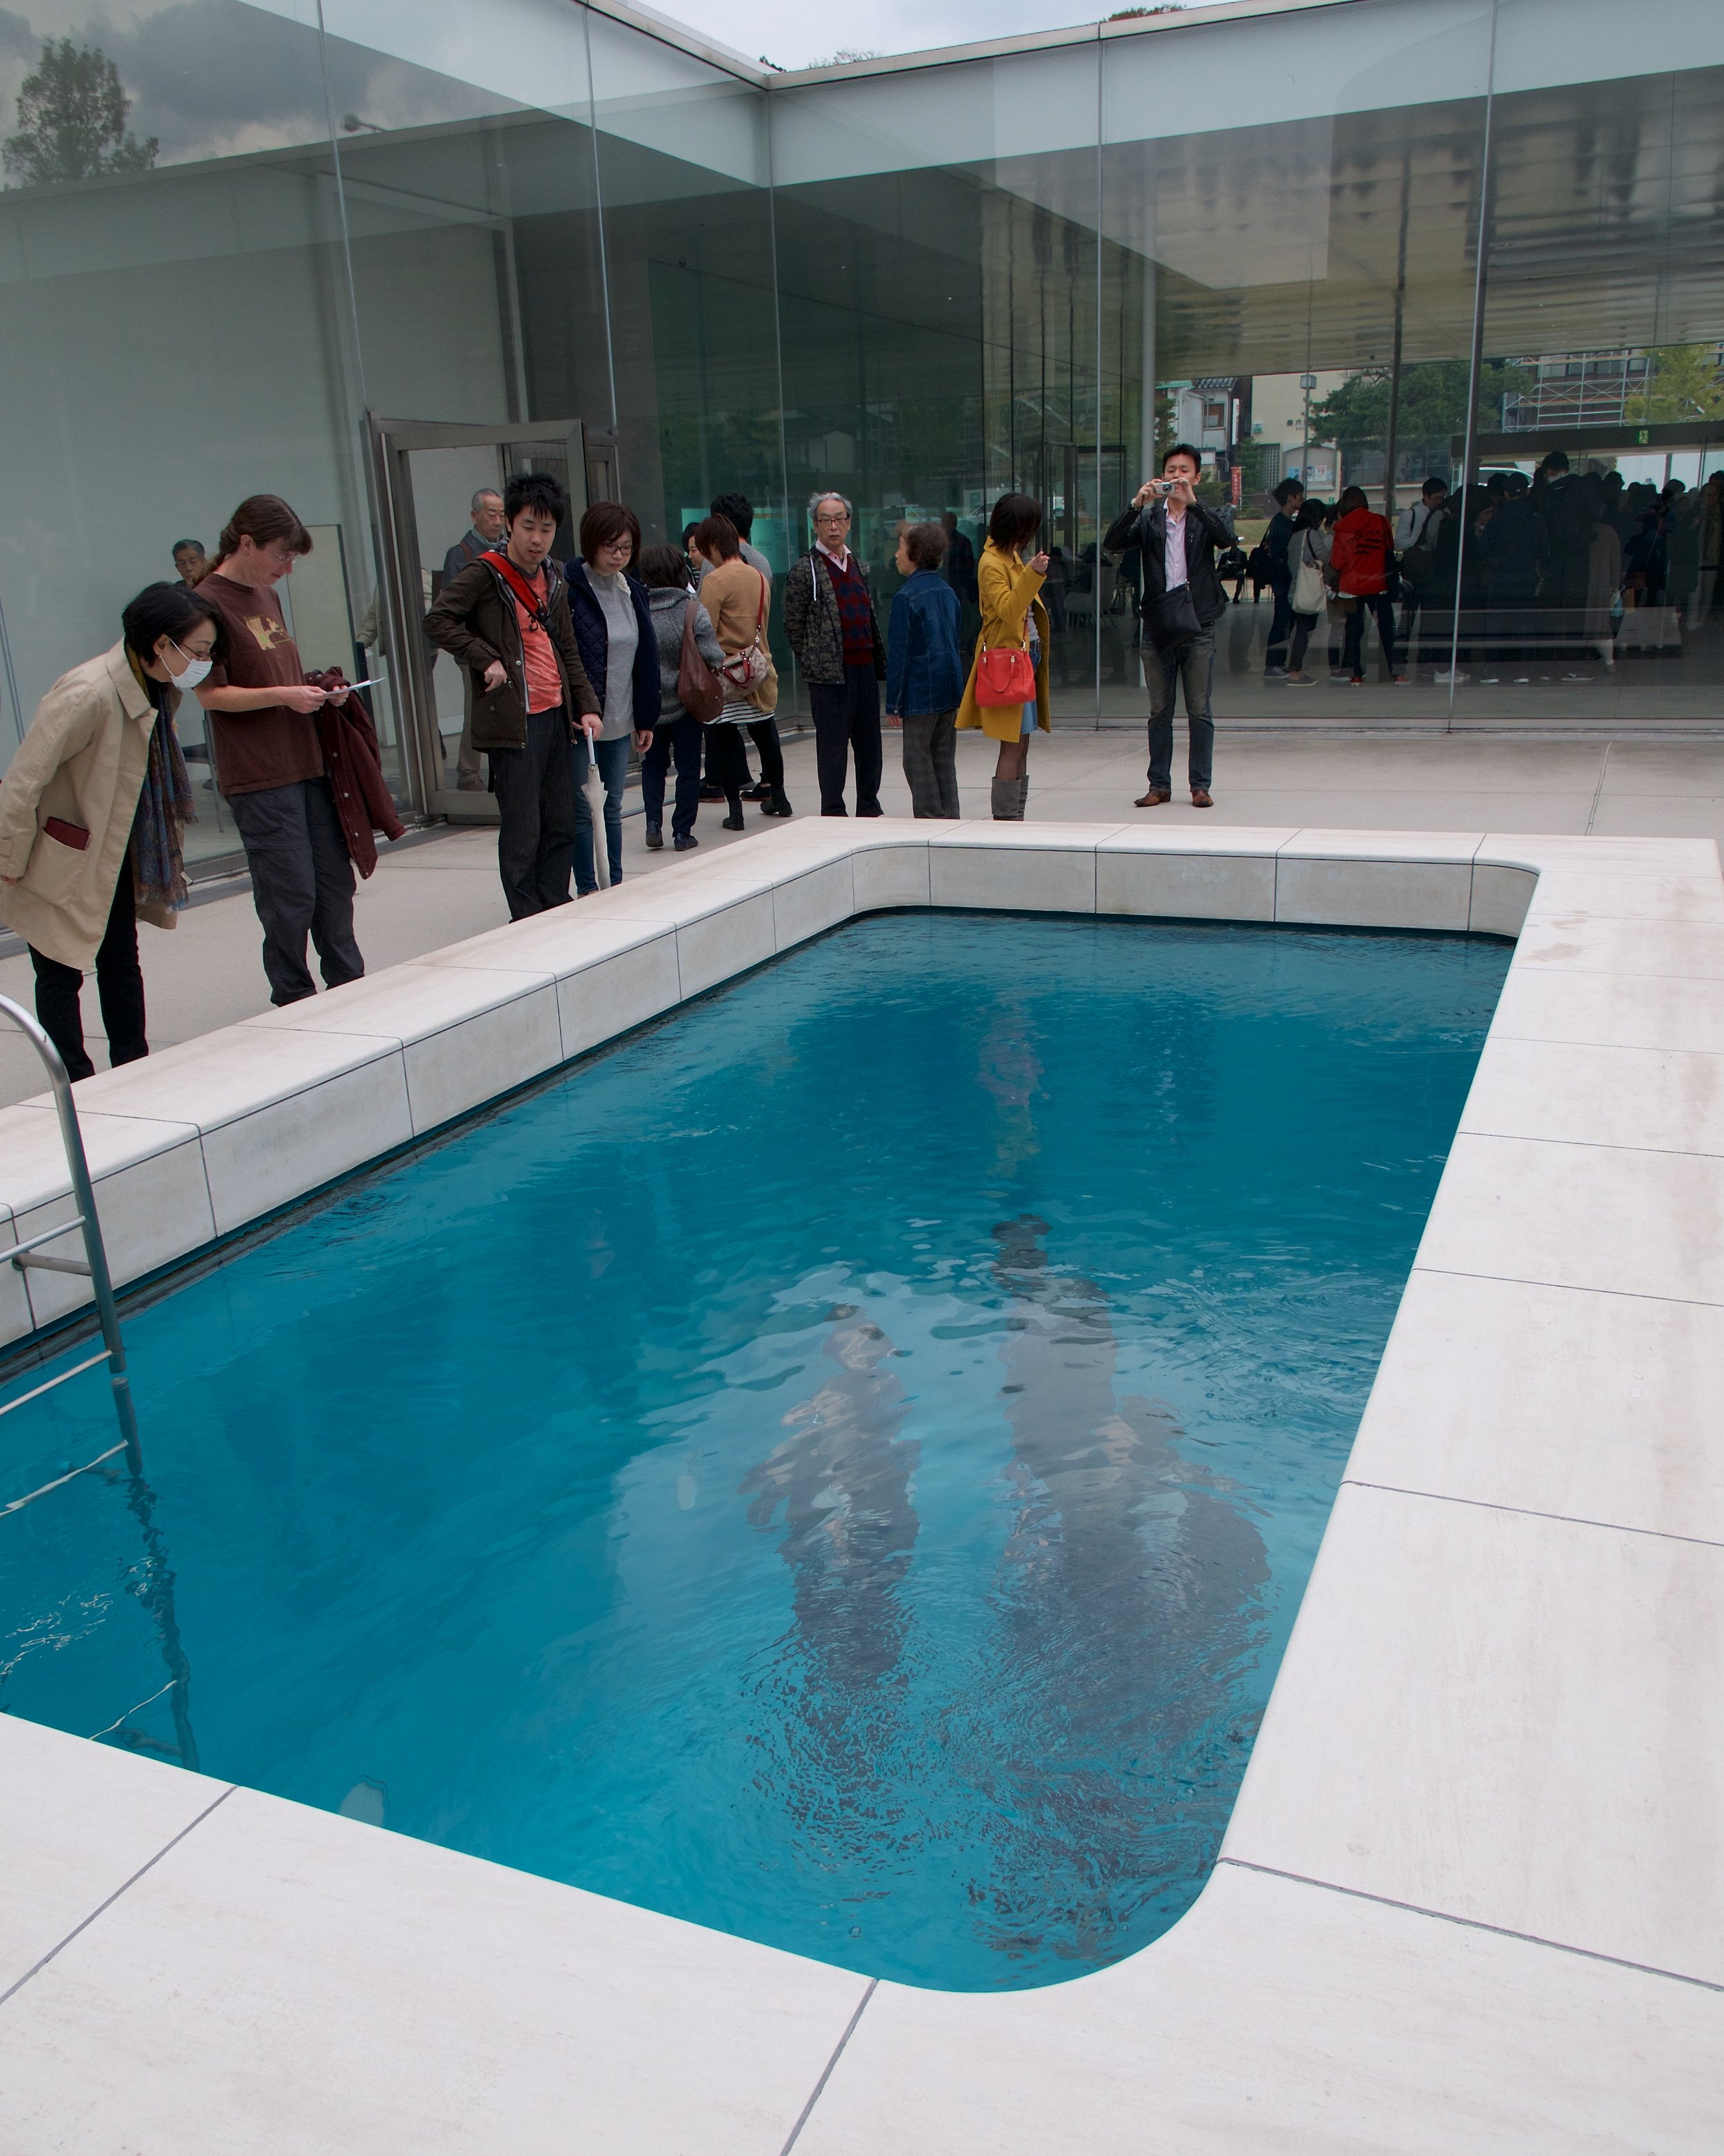 The Swimming Pool,Leandro Erlich